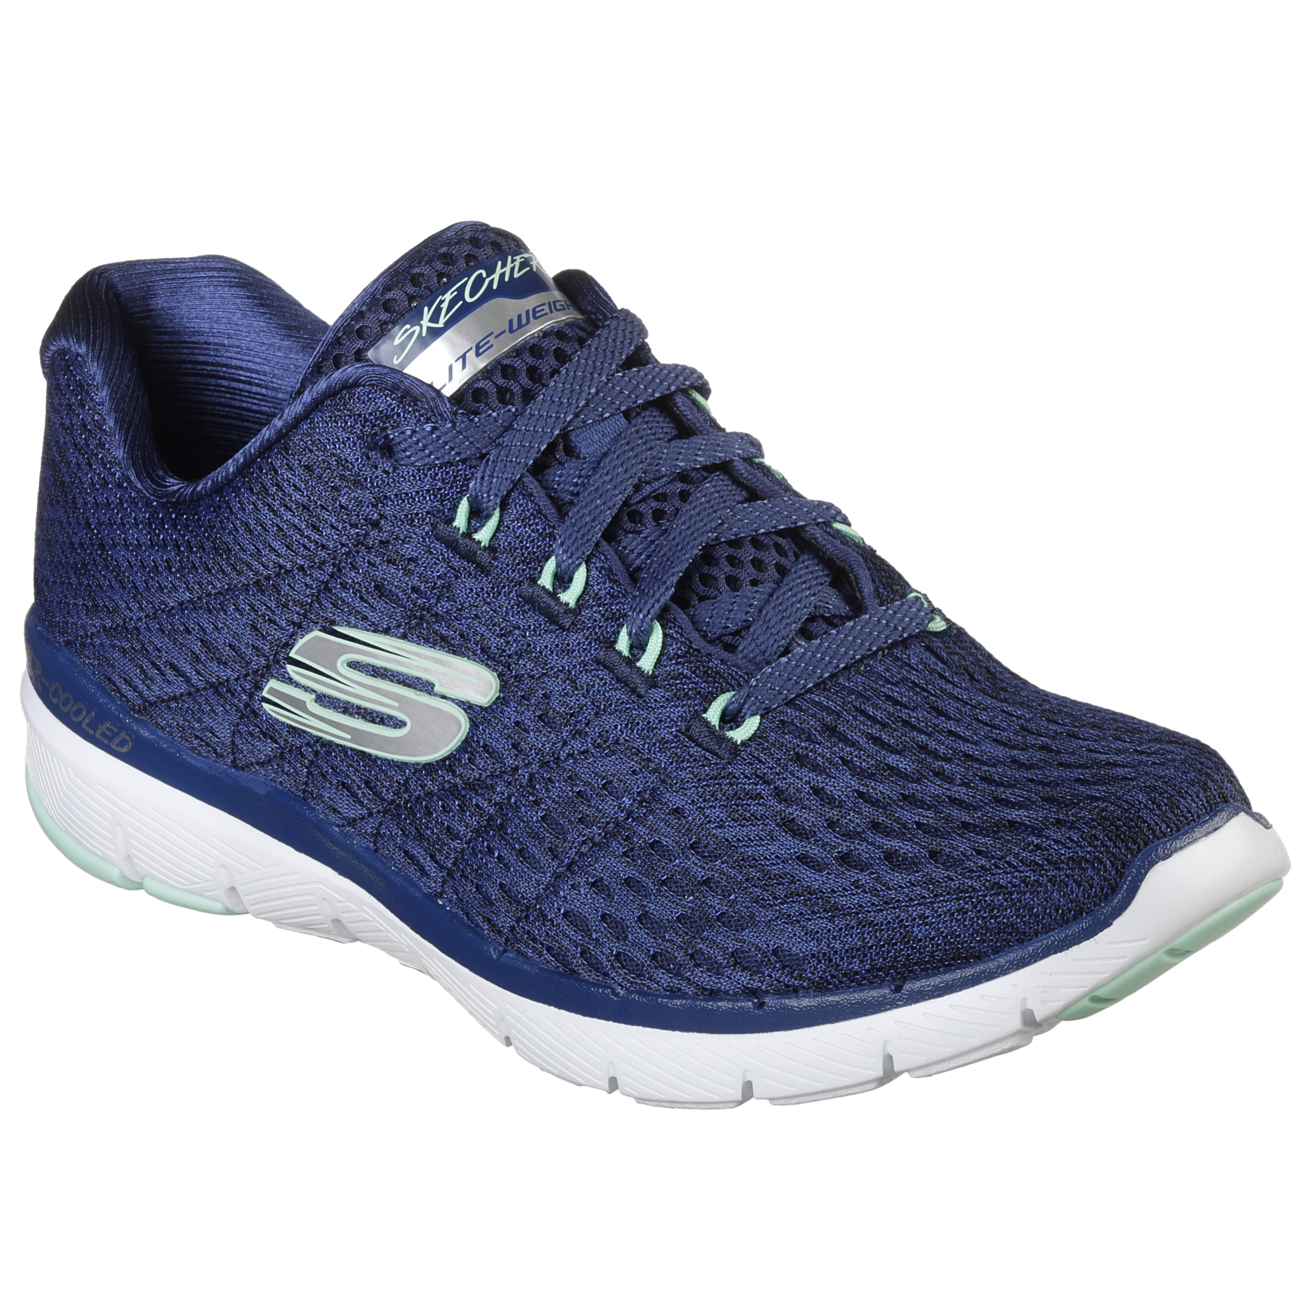 damen Skechers Flex Appeal 3.0 Satellites Lightweight Lightweight Lightweight Walking Turnschuhe US 6-11 be4cd4